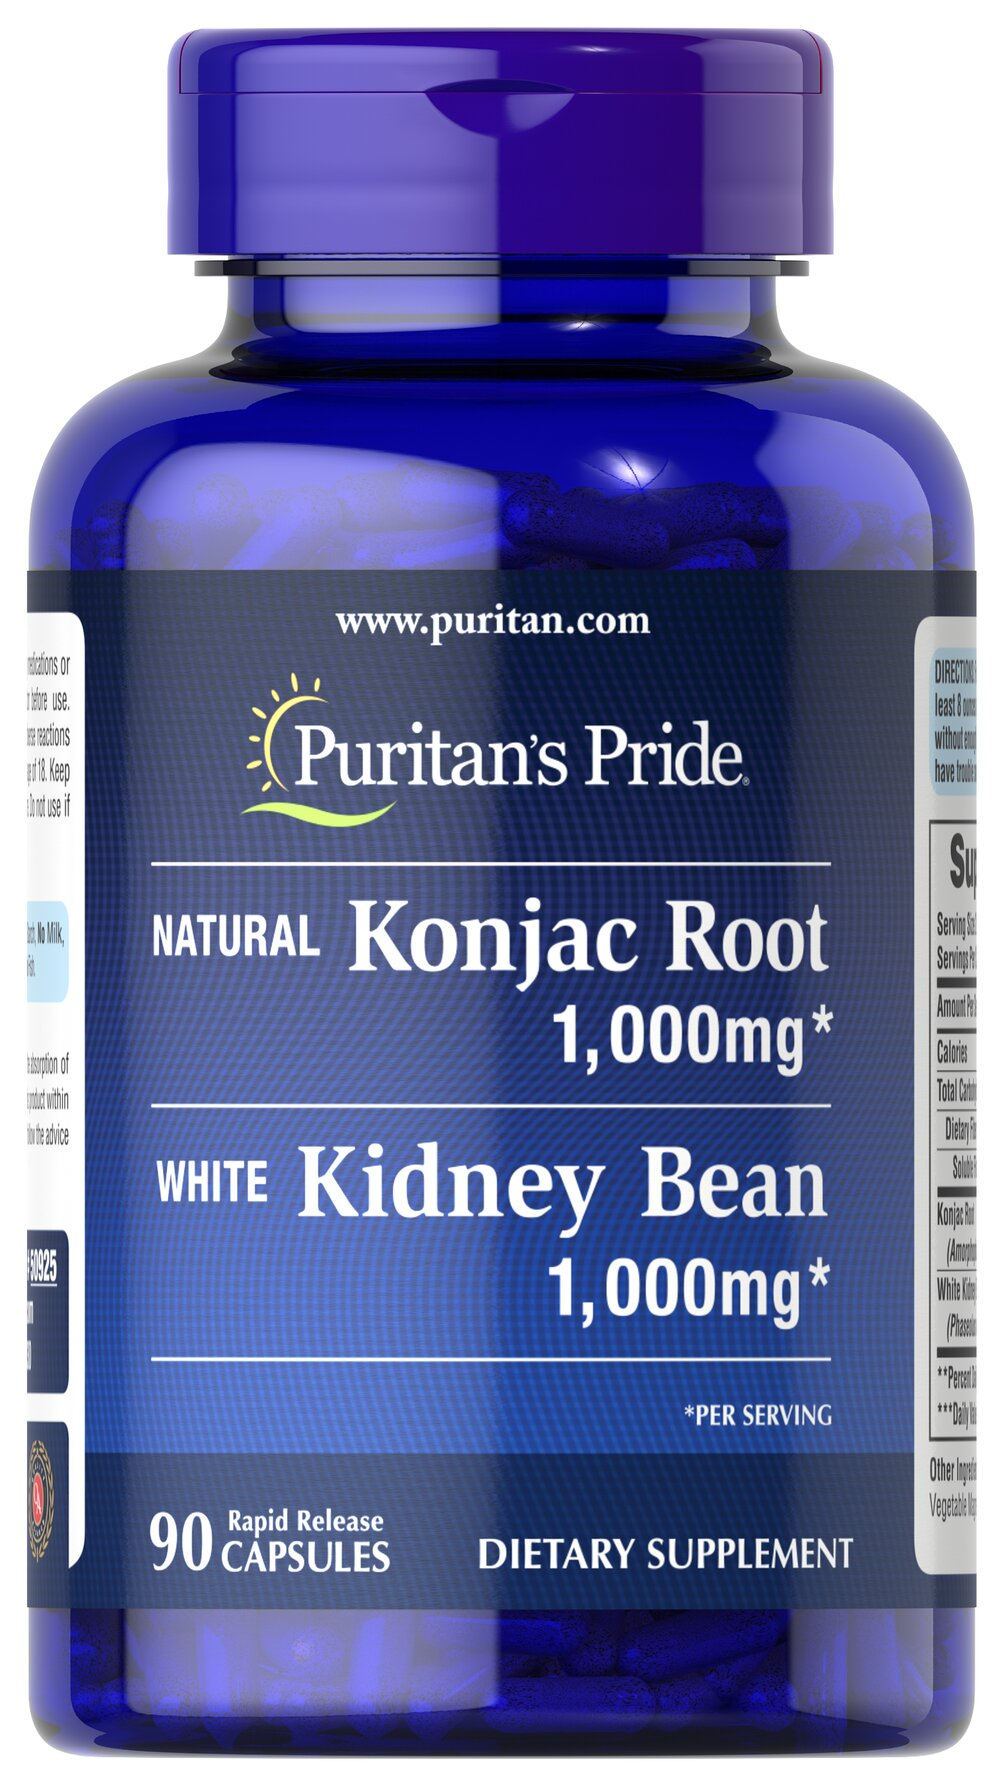 "Konjac Root and White Kidney Bean <ul><li><span style=""font-family:'Arial','sans-serif';color:black;"">A traditional formula for wellness.**</span></li><li><span style=""font-family:'Arial','sans-serif';color:black;"">Features Konjac Root, a natural source of Glucomannan.</span></li><li><span style=""font-family:'Arial','sans-serif';color:black;"">A great cho"